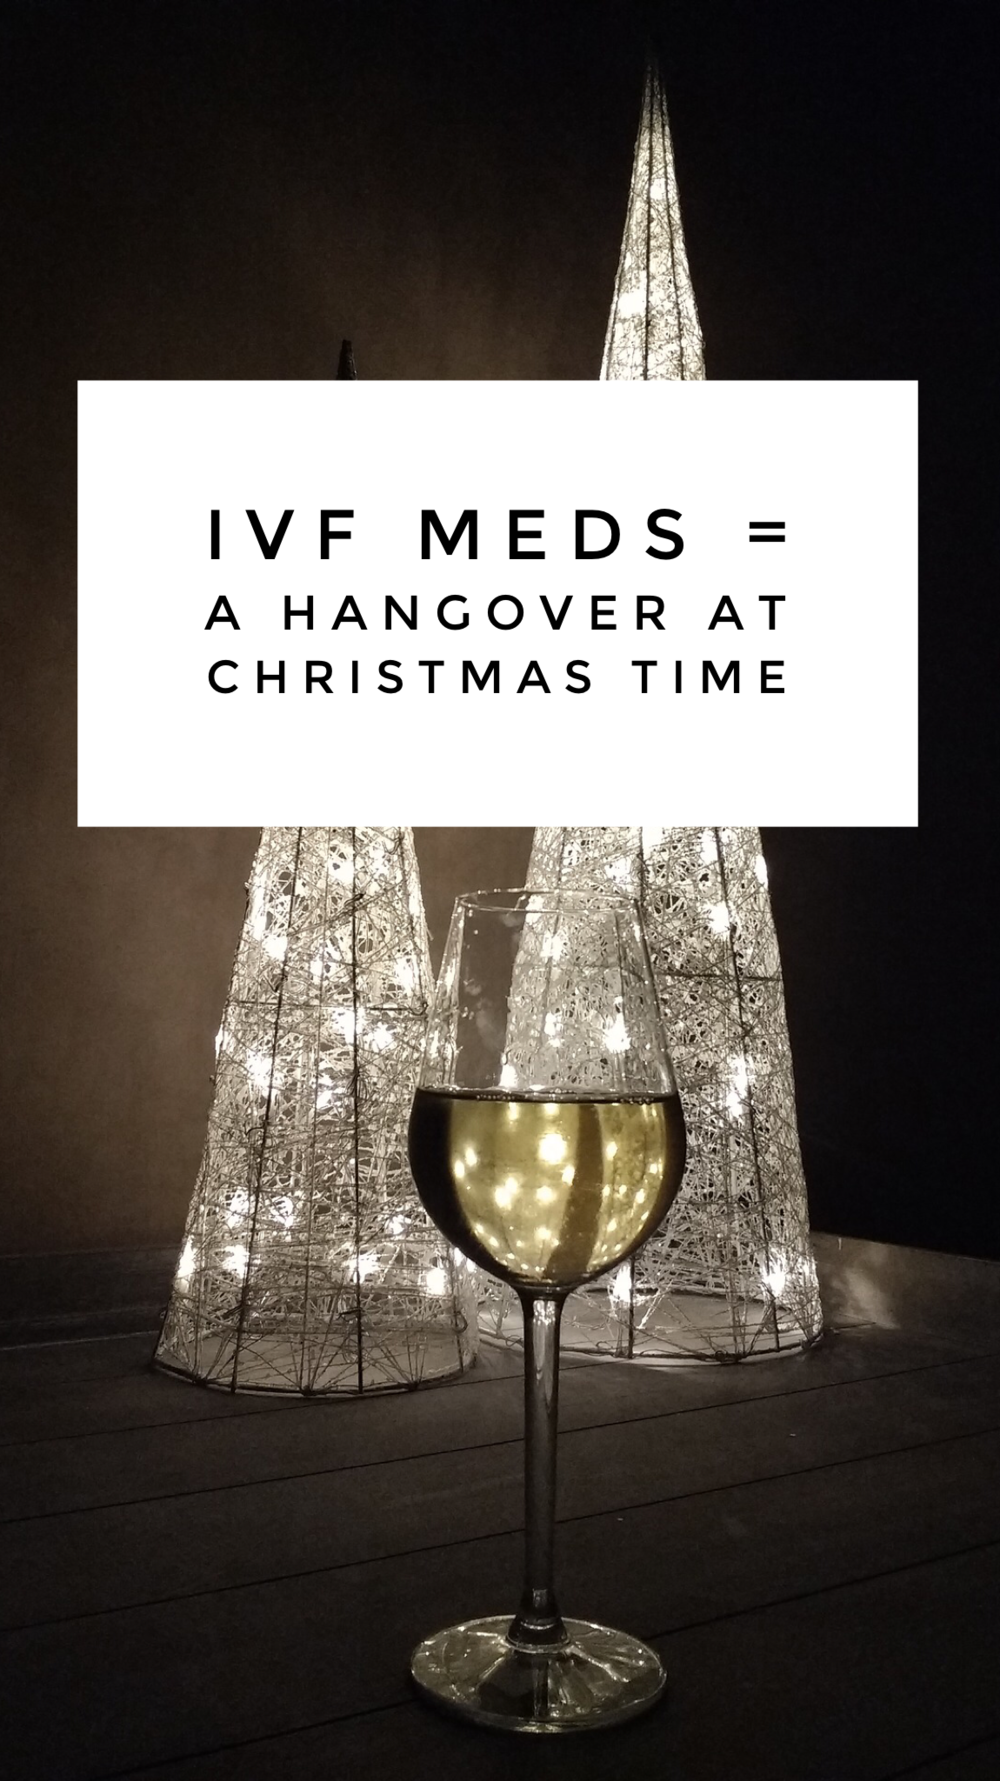 IVF Meds_hangover at Christmas.PNG